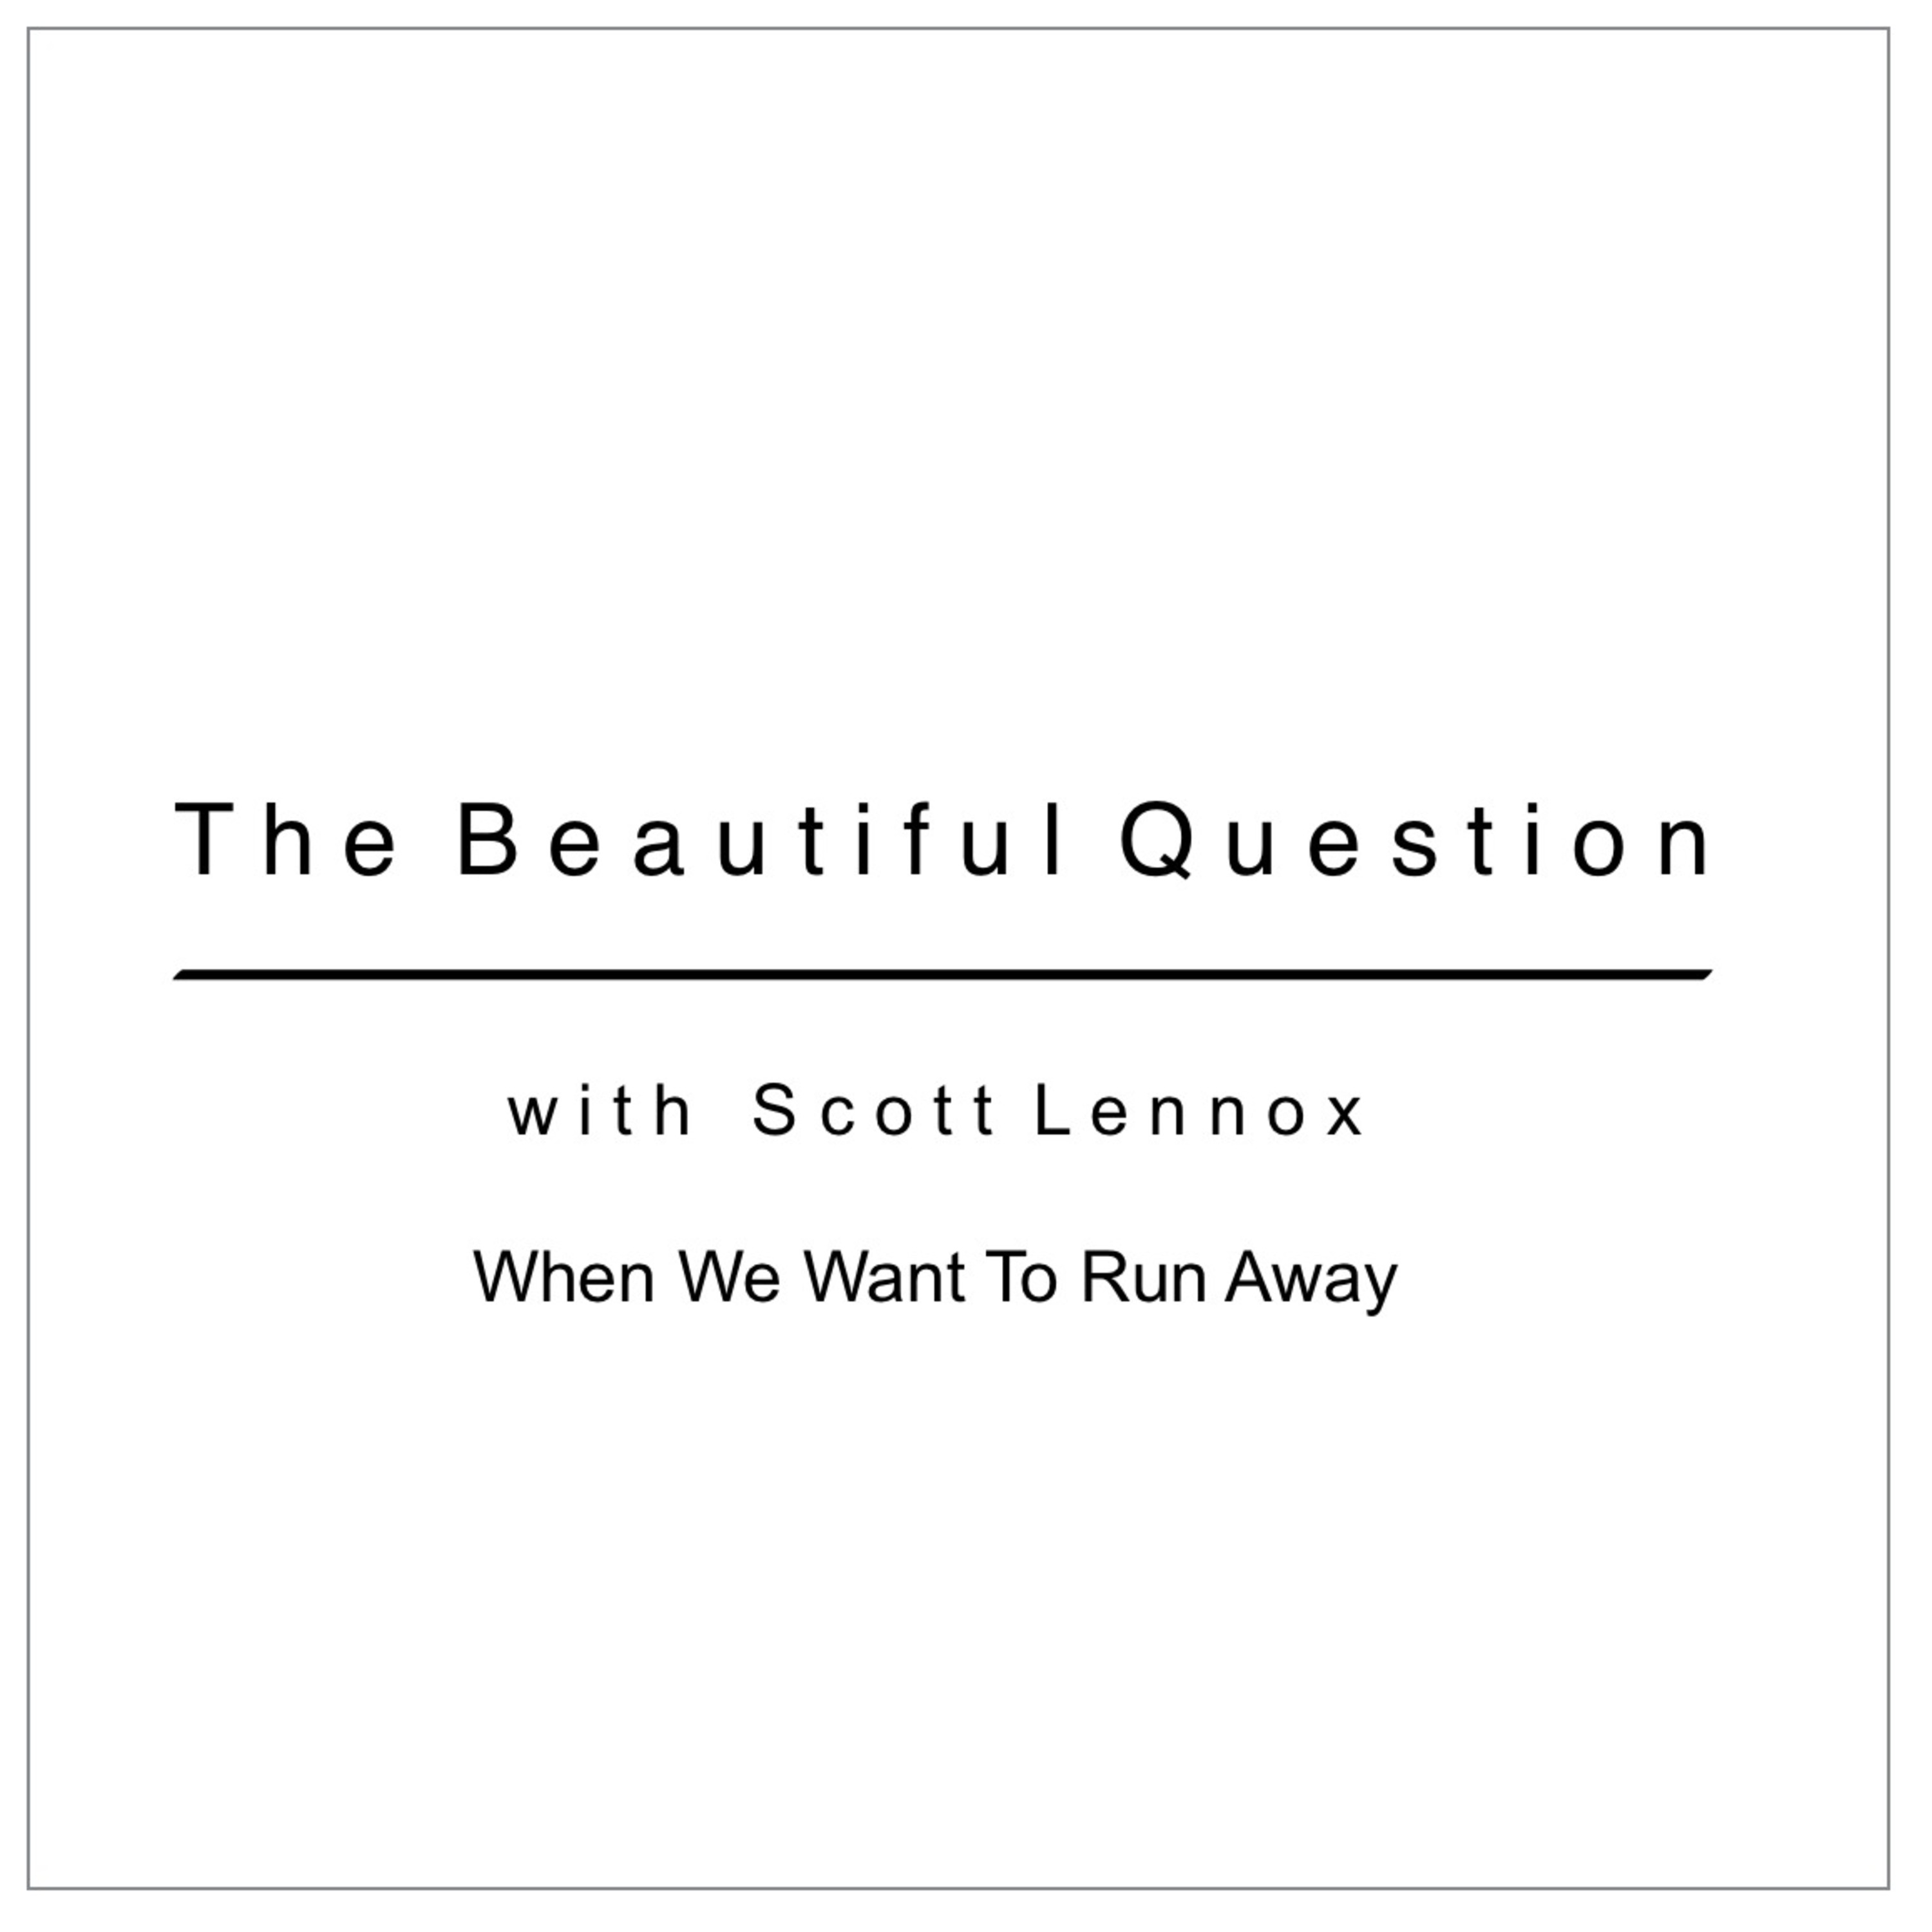 When We Want To Run Away